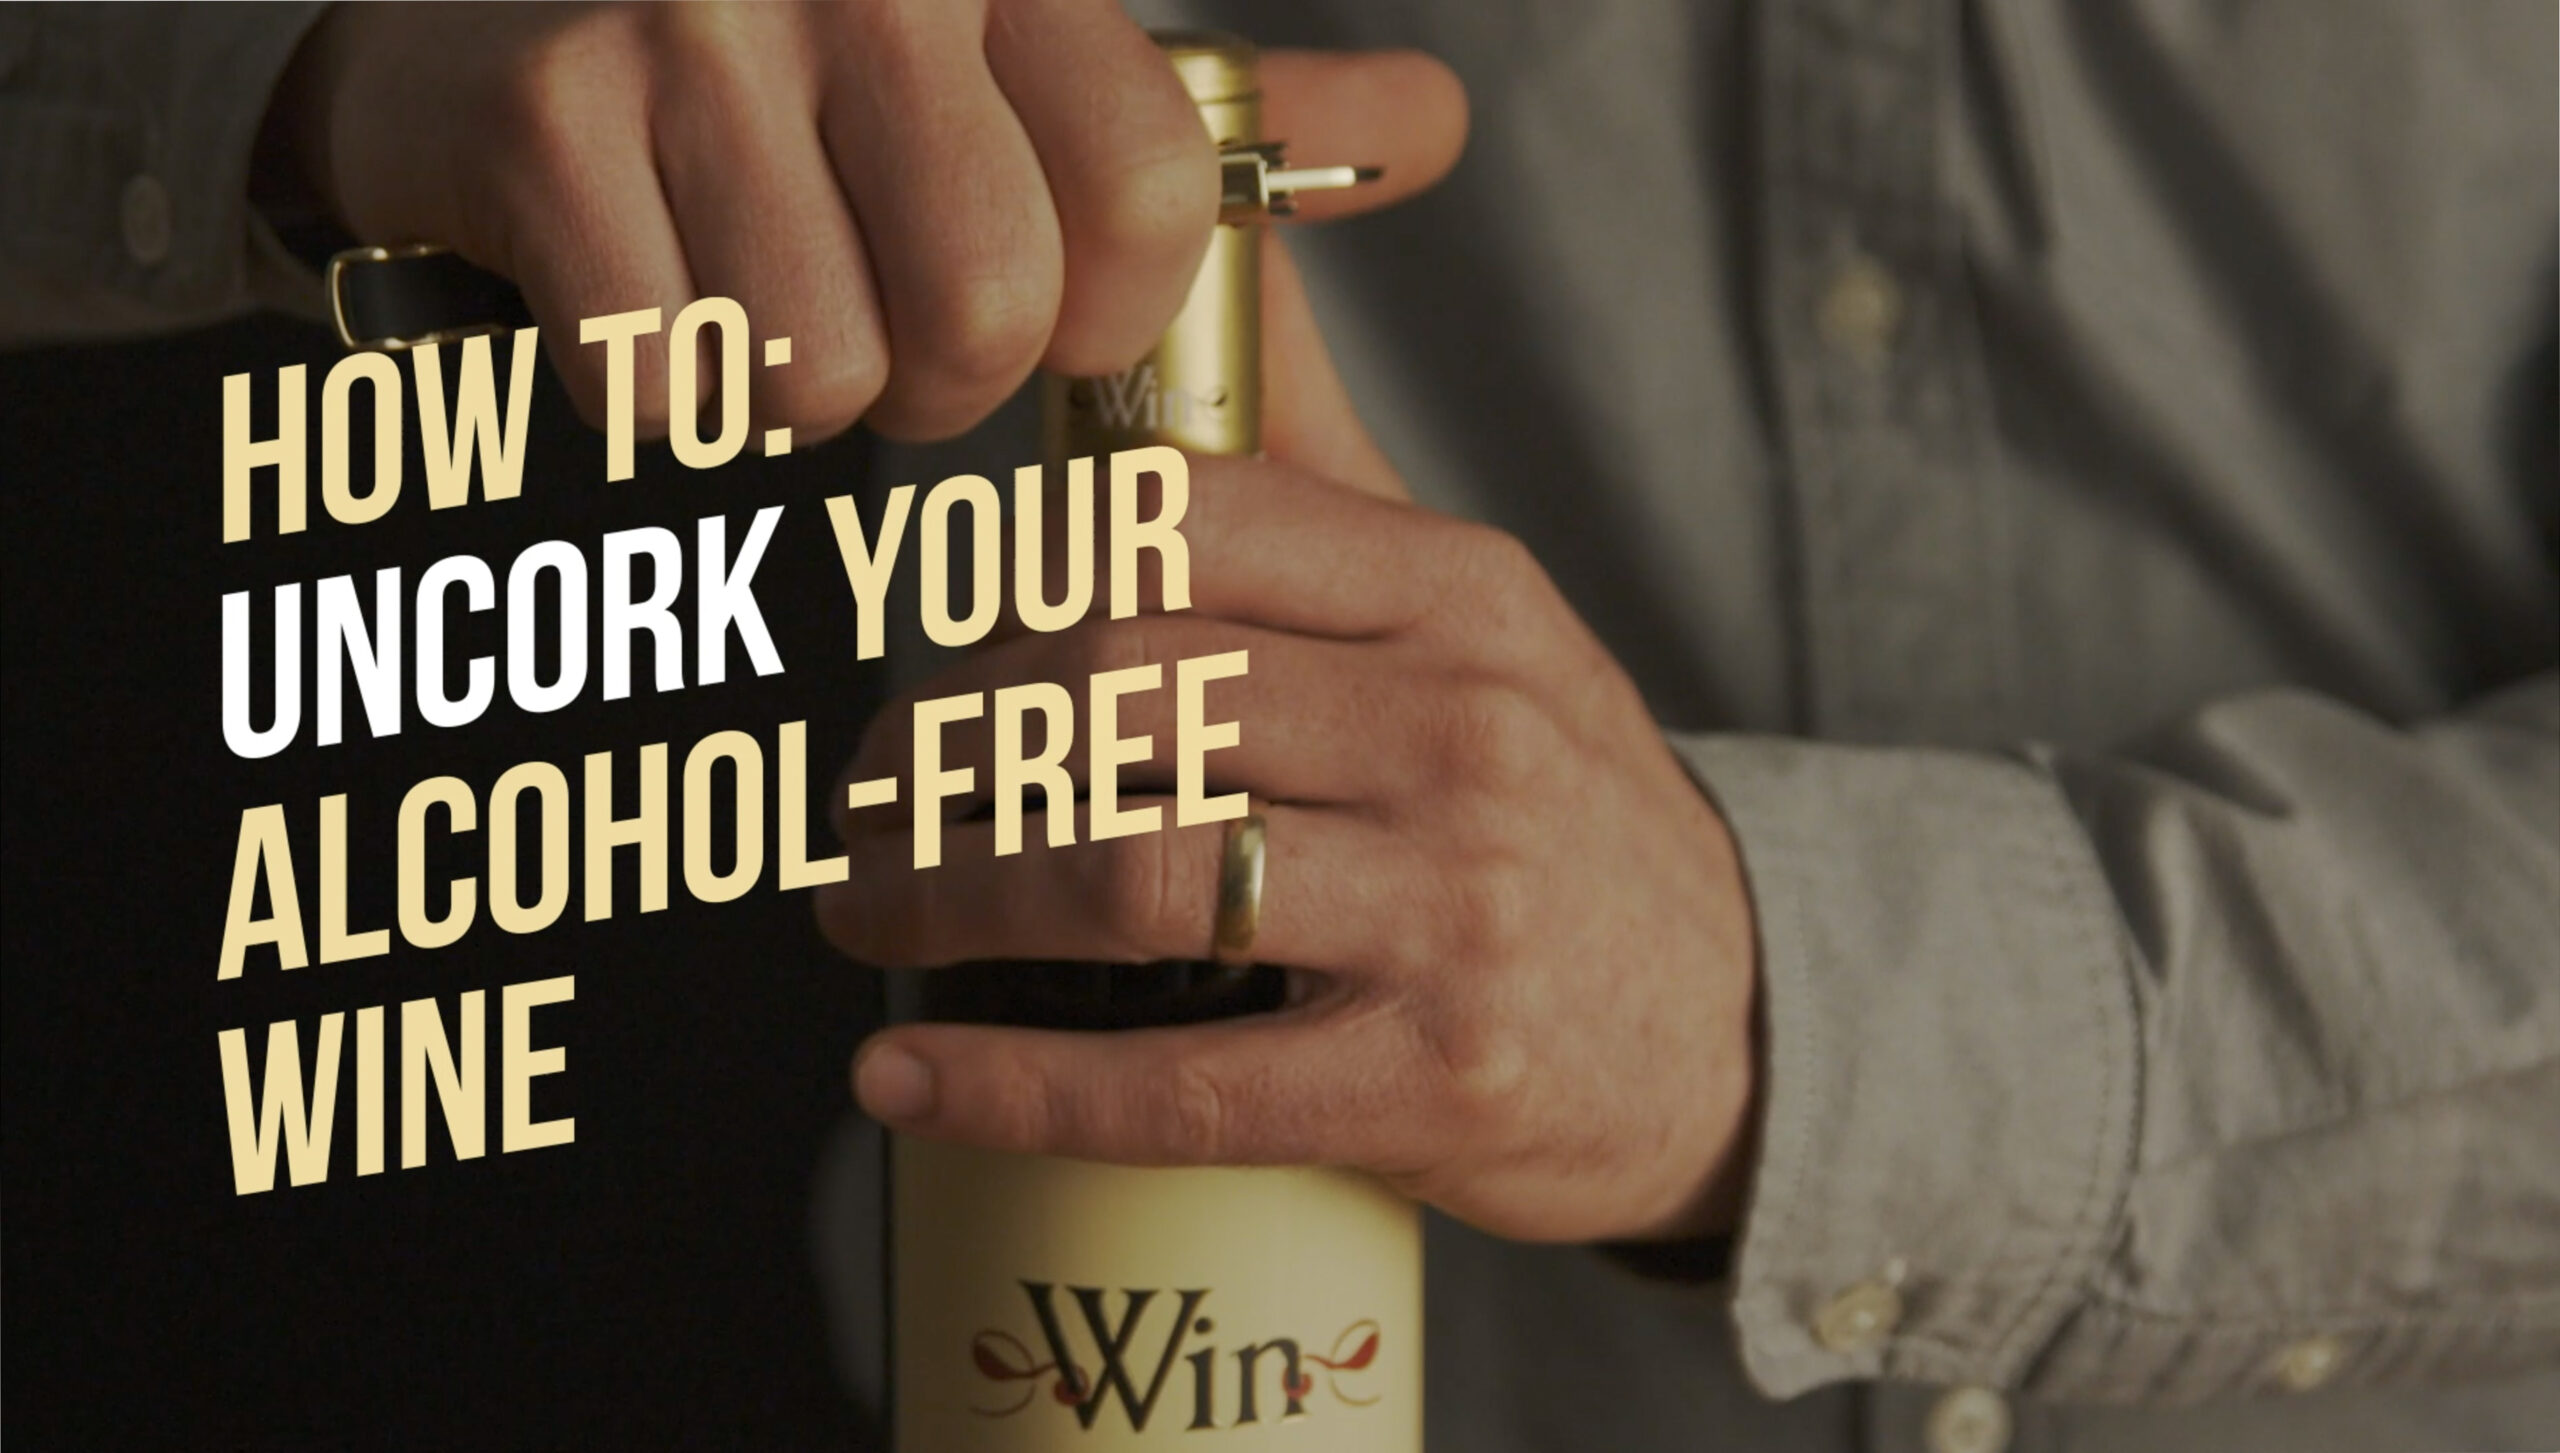 Rival House How to uncork your alcohol-free wine